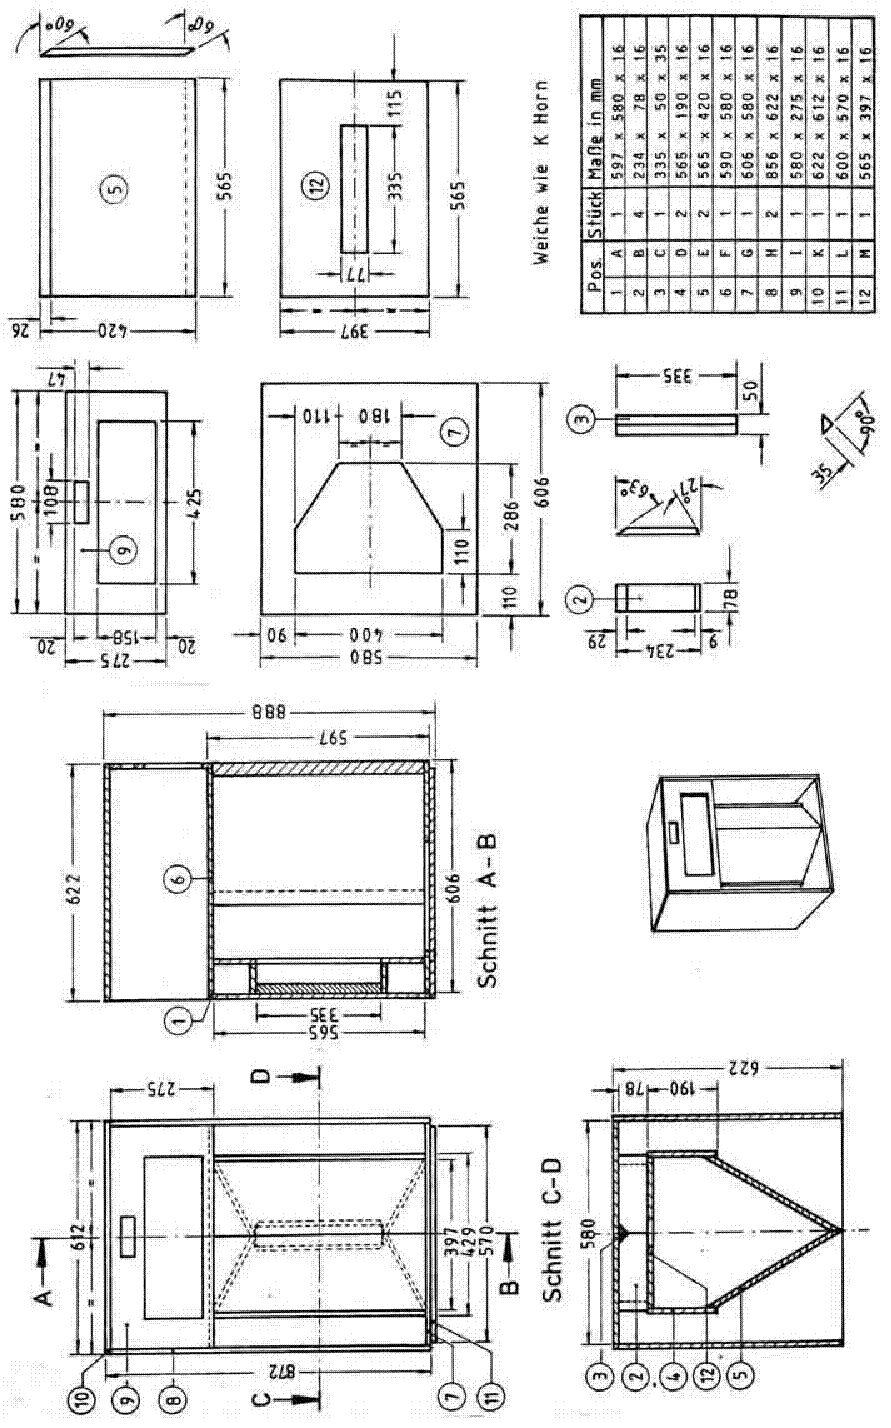 klipsch la scala speaker system sch service manual download  schematics  eeprom  repair info for